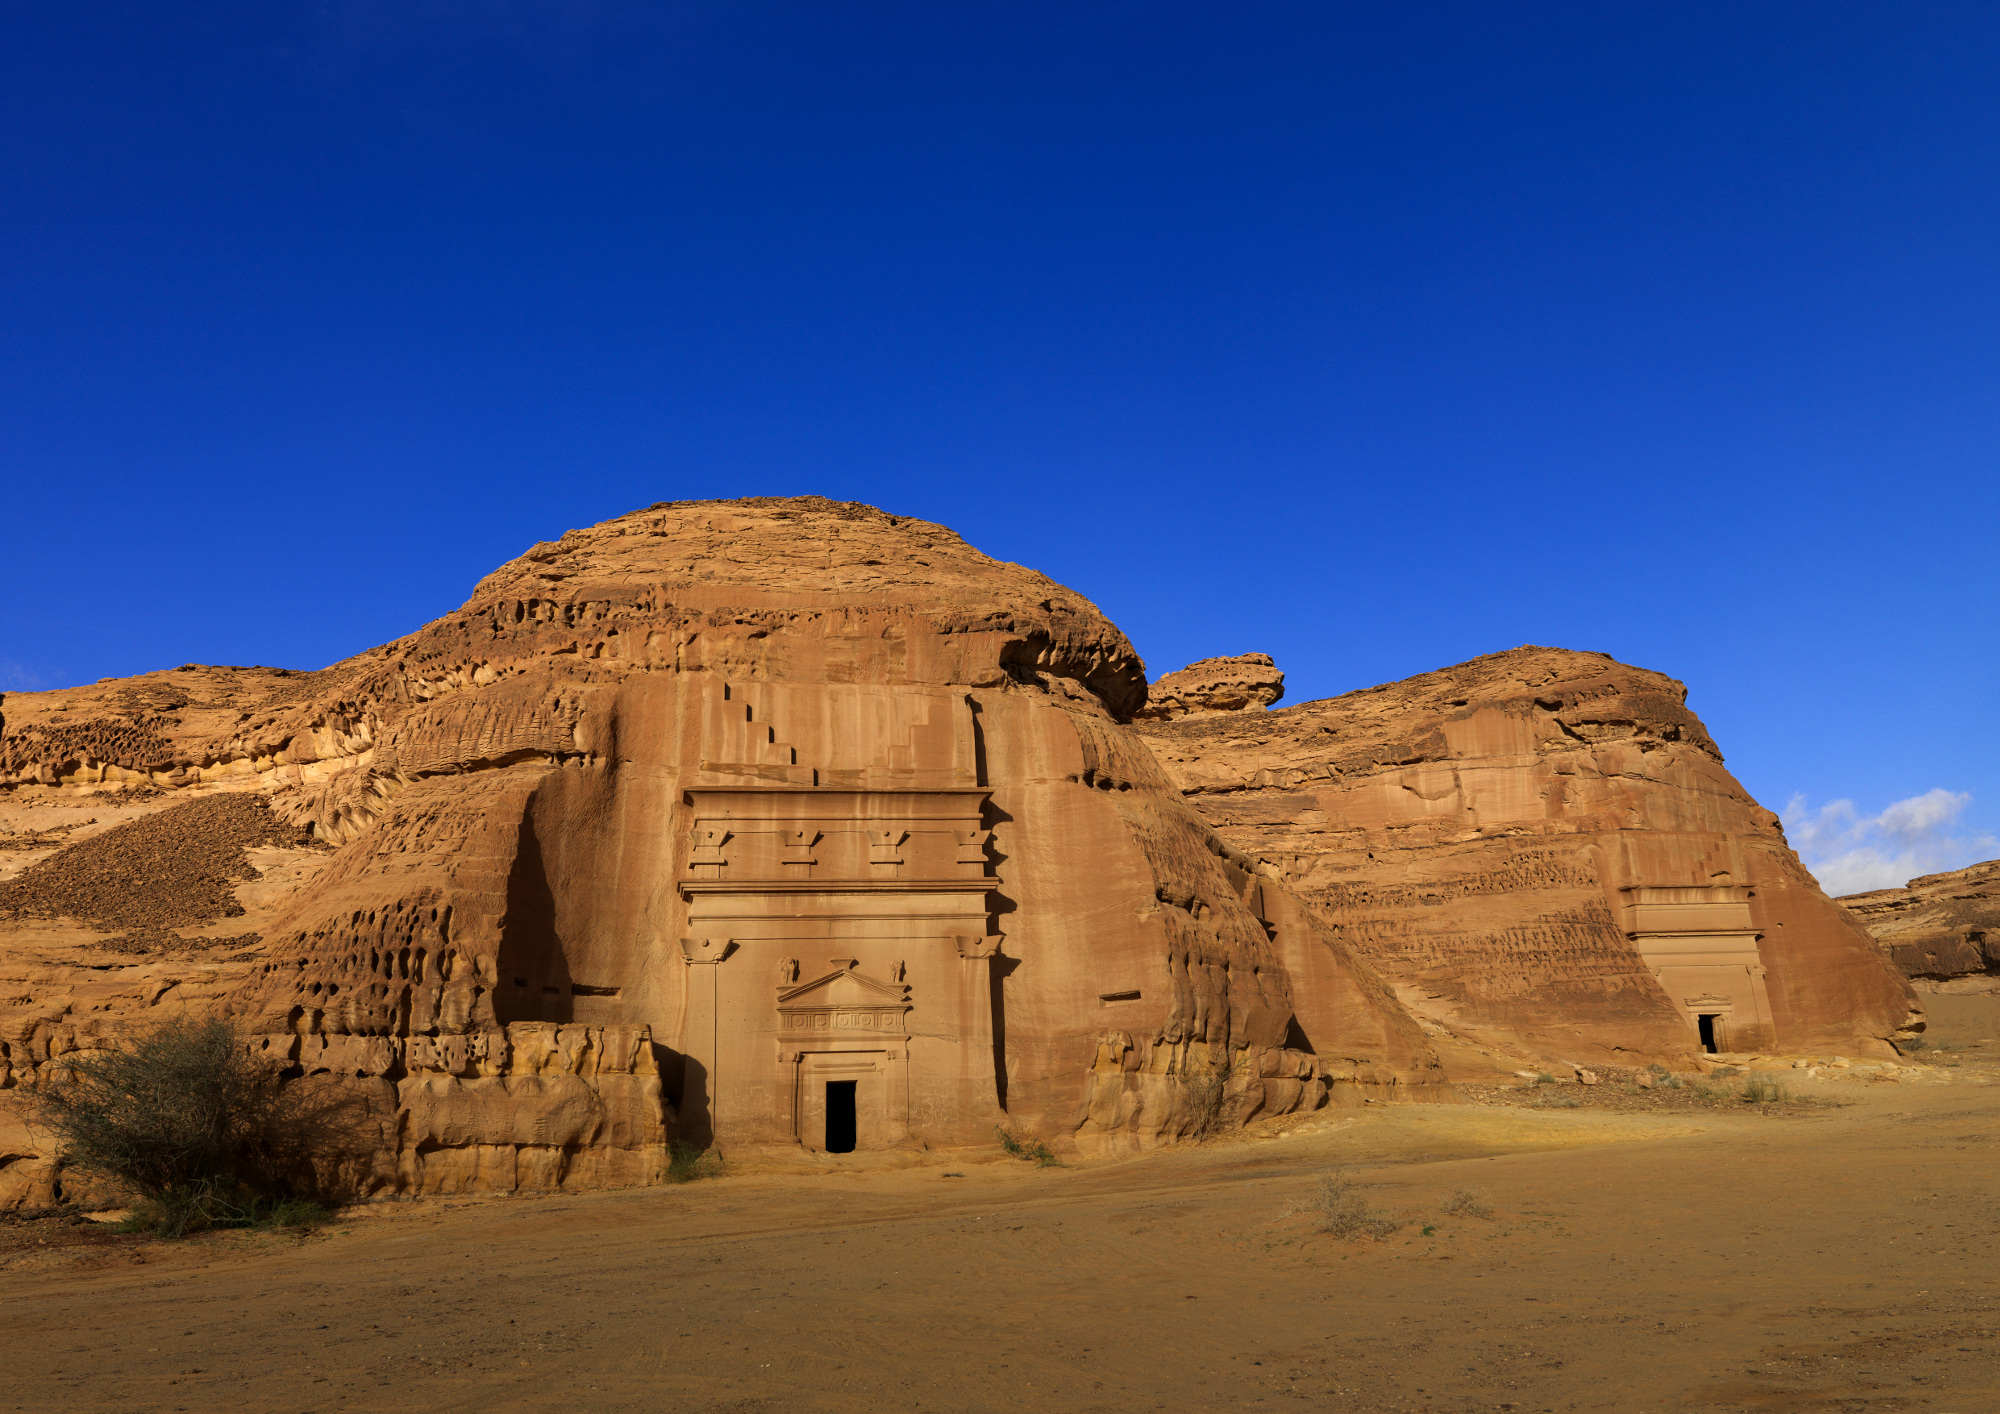 Madain Saleh in Saudi Arabia, a sister city to Jordan's Petra. The UNESCO World Heritage site is located in the Al-Ula sector, within the Al Madinah Region of Saudi Arabia.